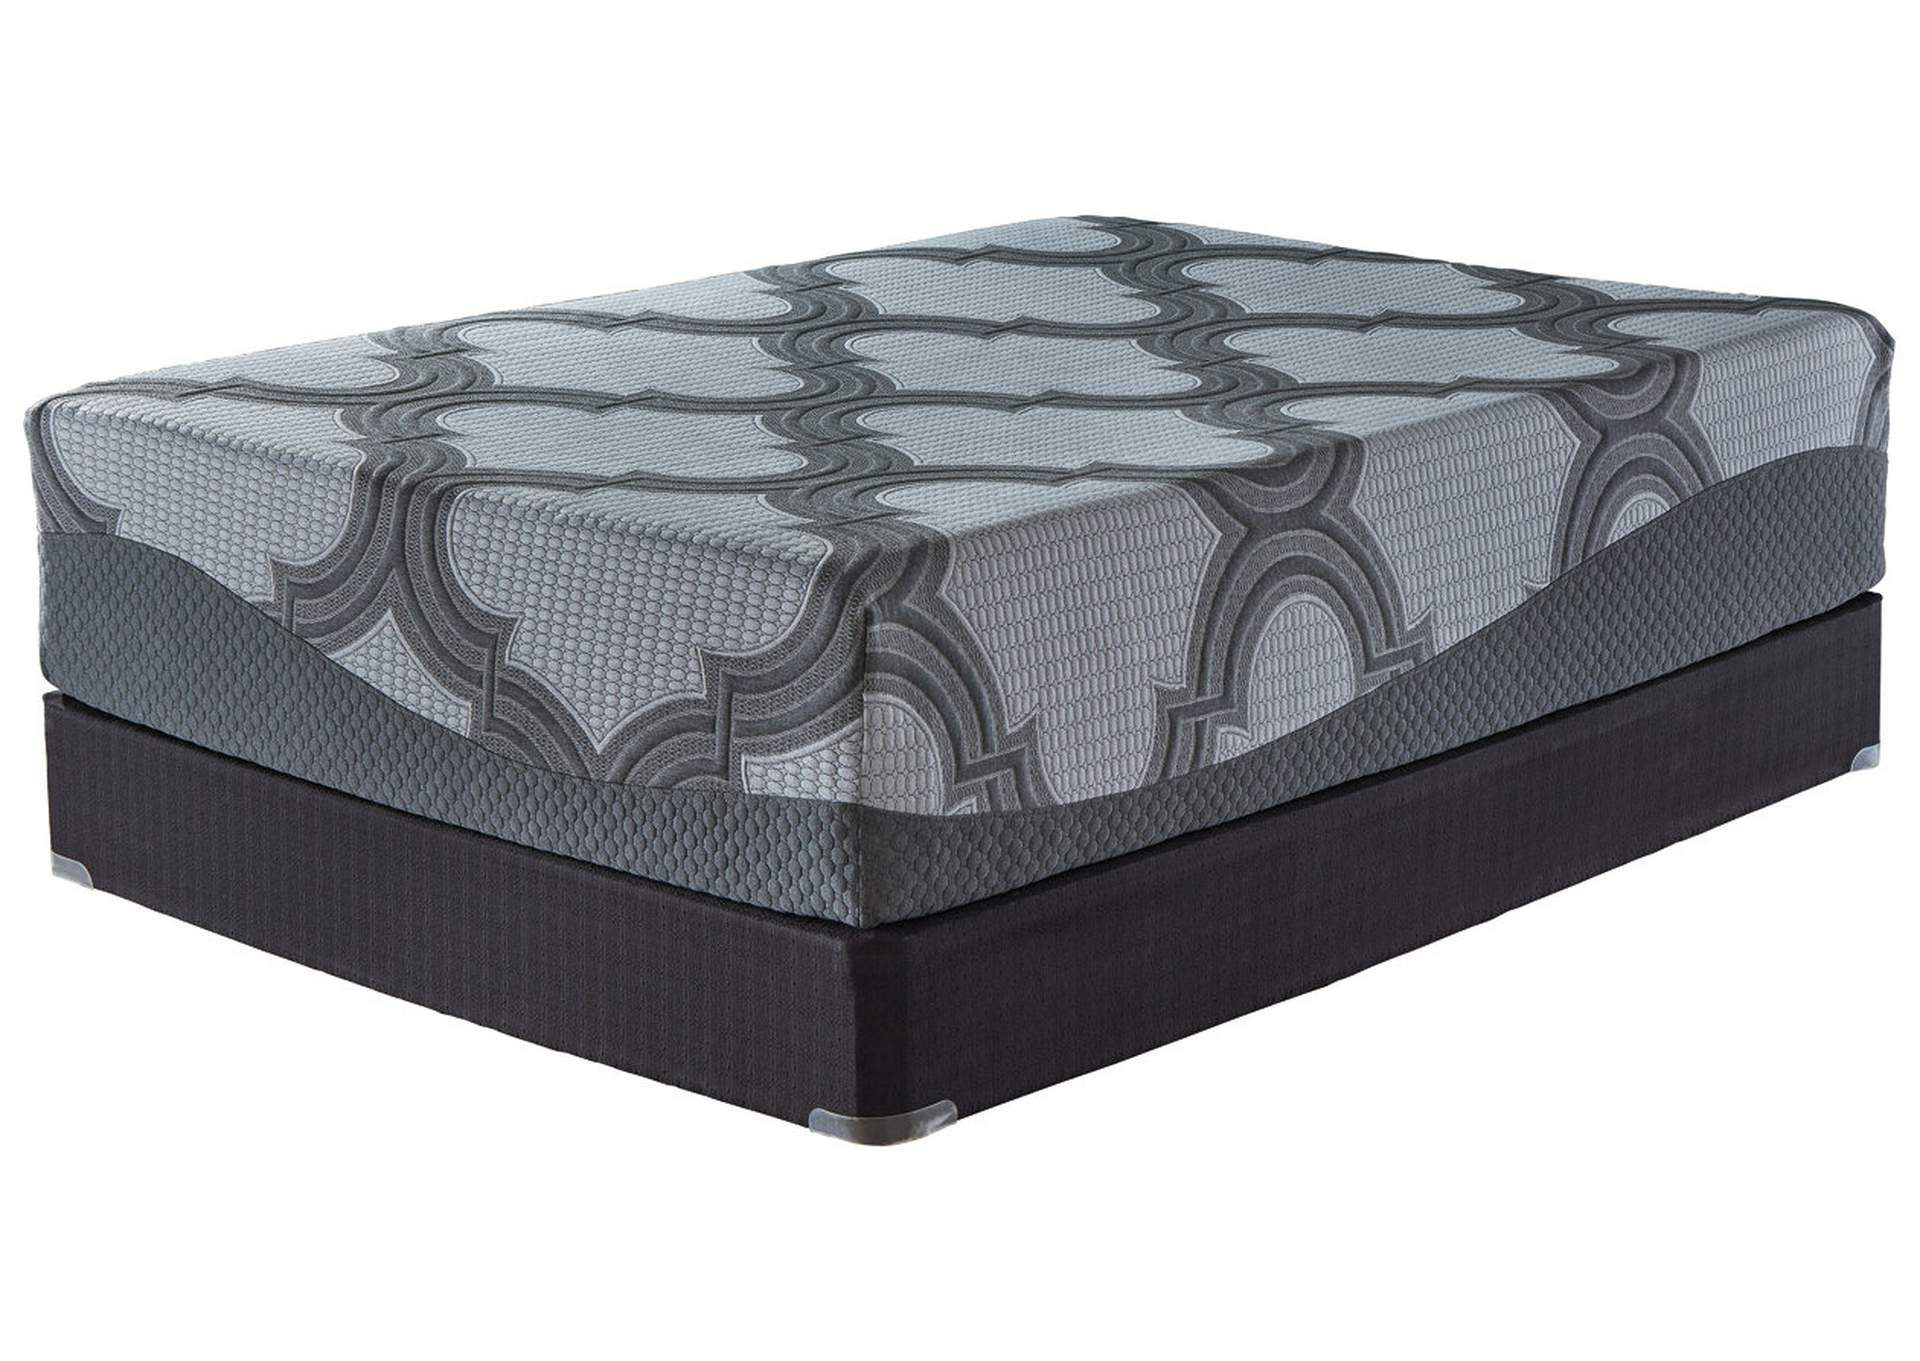 14 Inch Ashley Hybrid Gray King Mattress,Sierra Sleep by Ashley